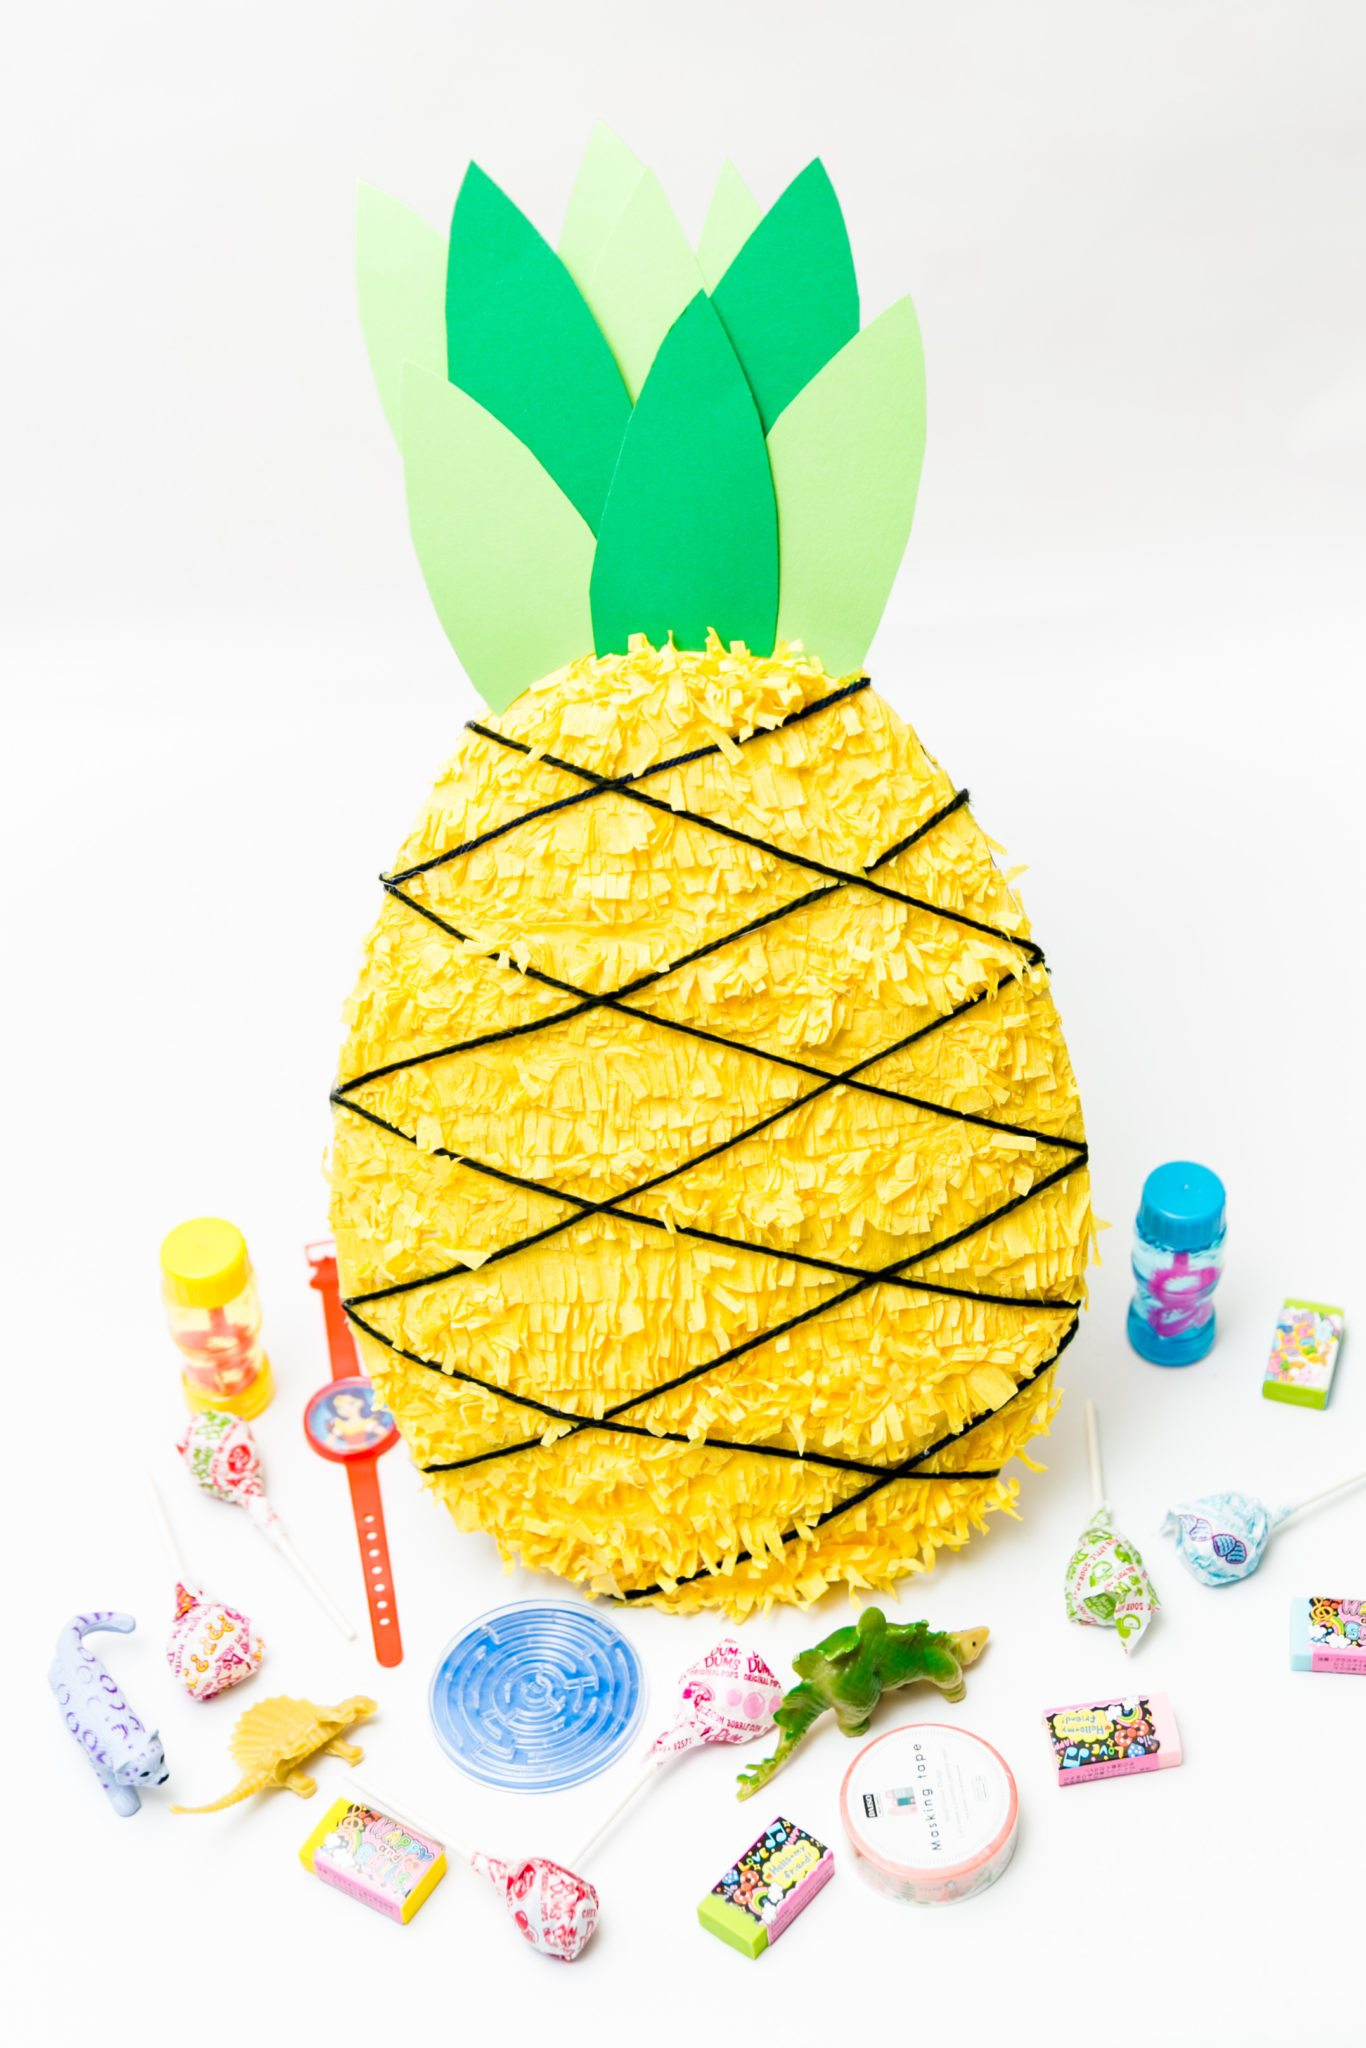 DIY pineapple pinata from a paper plate.